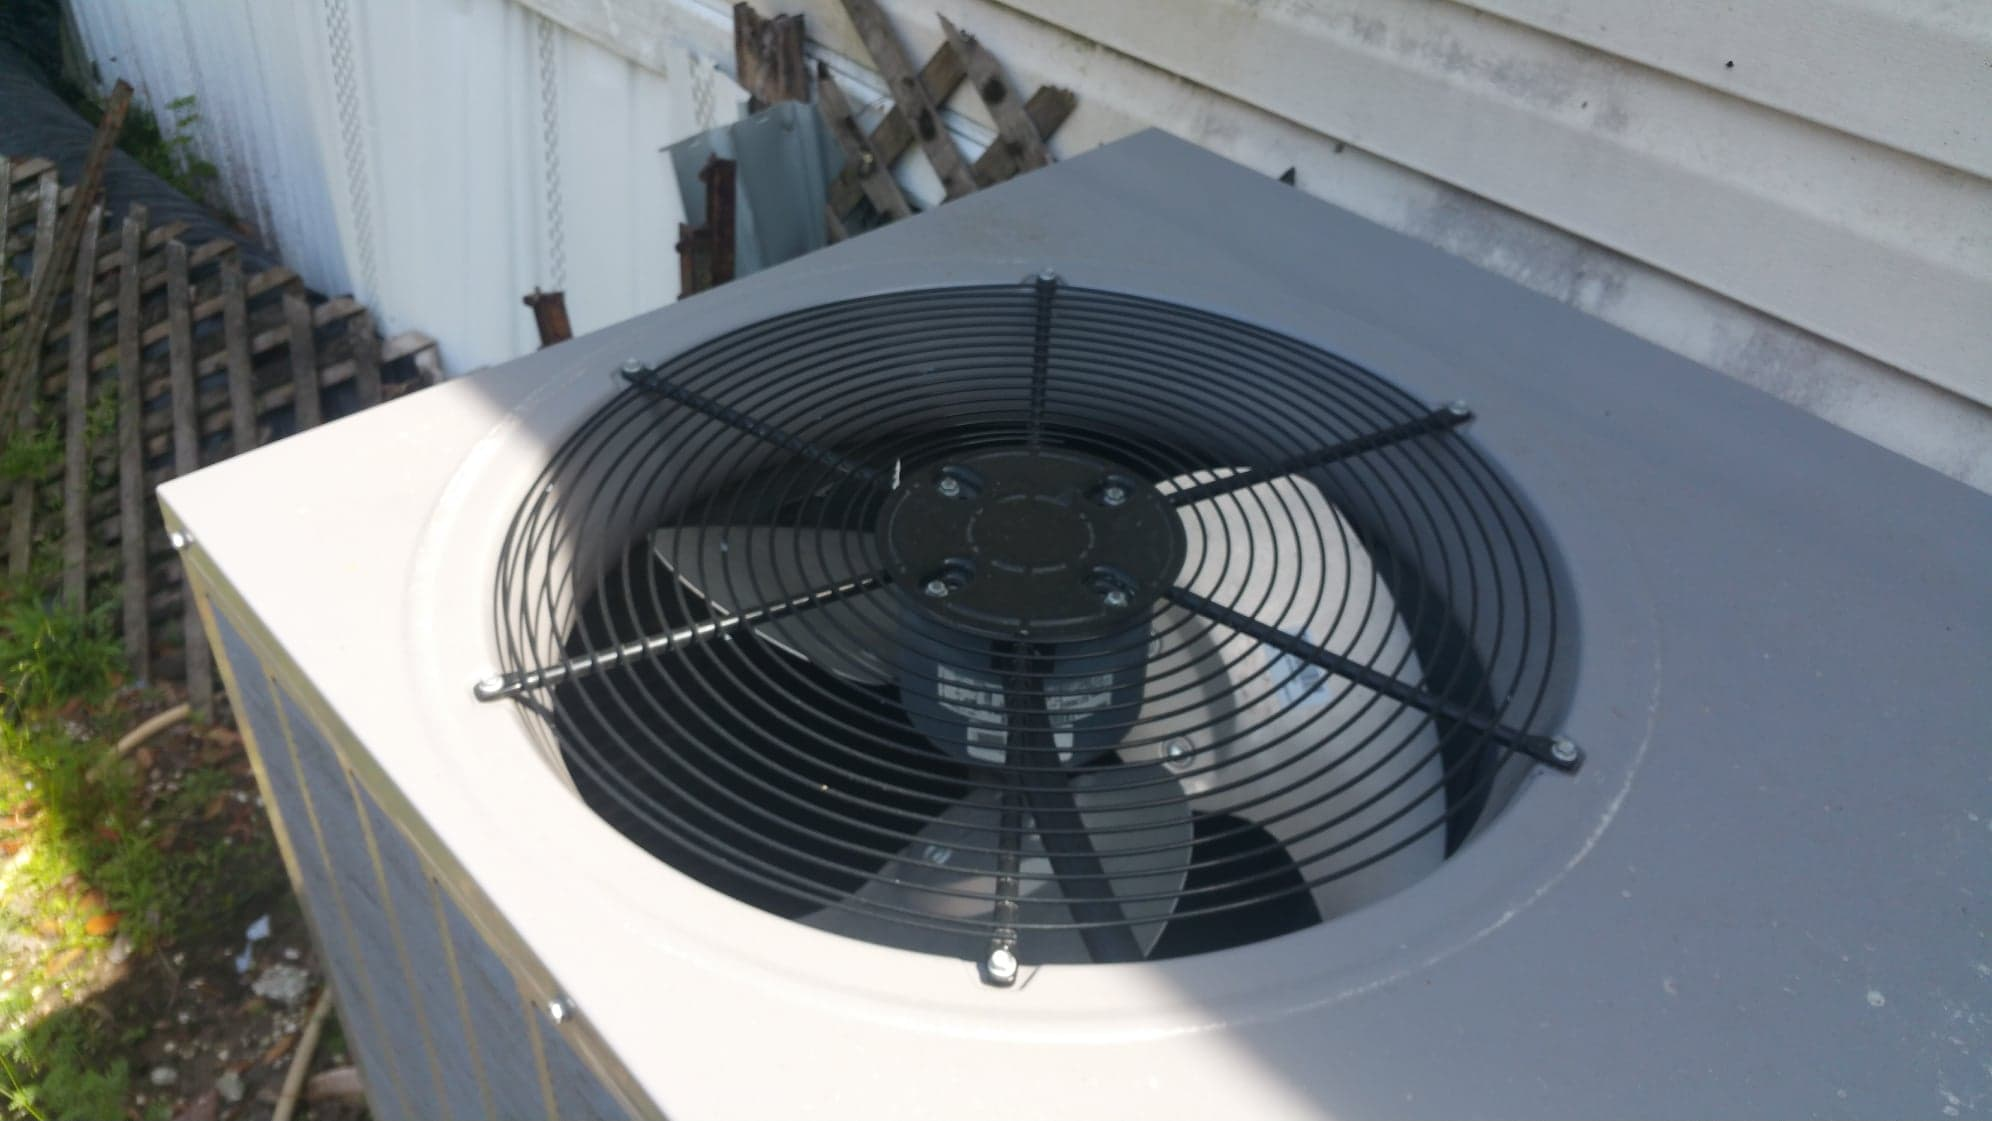 AC Unit WJH44800KTP0A1 Blows Air, Neither Hot Nor Cold-ac-4.jpg